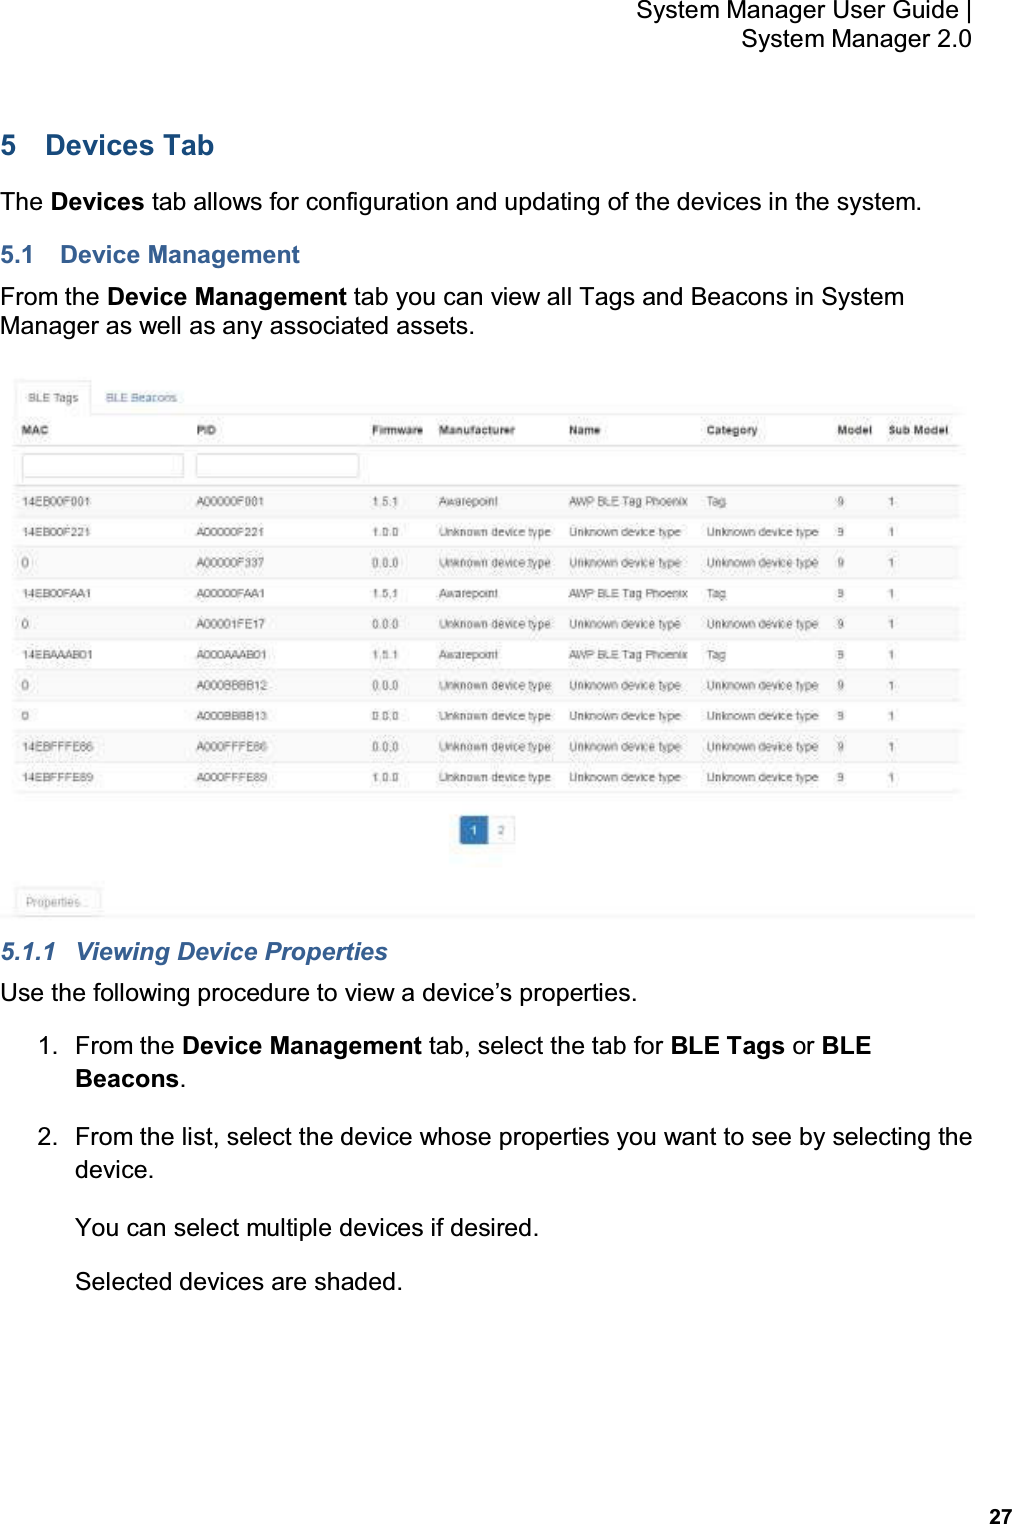 27 System Manager User Guide    System Manager 2.0 5  Devices Tab The Devices tab allows for configuration and updating of the devices in the system. 5.1  Device Management From the Device Management tab you can view all Tags and Beacons in System Manager as well as any associated assets.  5.1.1  Viewing Device Properties Use the following procedure to view a device's properties. 1.  From the Device Management tab, select the tab for BLE Tags or BLE Beacons. 2.  From the list, select the device whose properties you want to see by selecting the device. You can select multiple devices if desired. Selected devices are shaded.